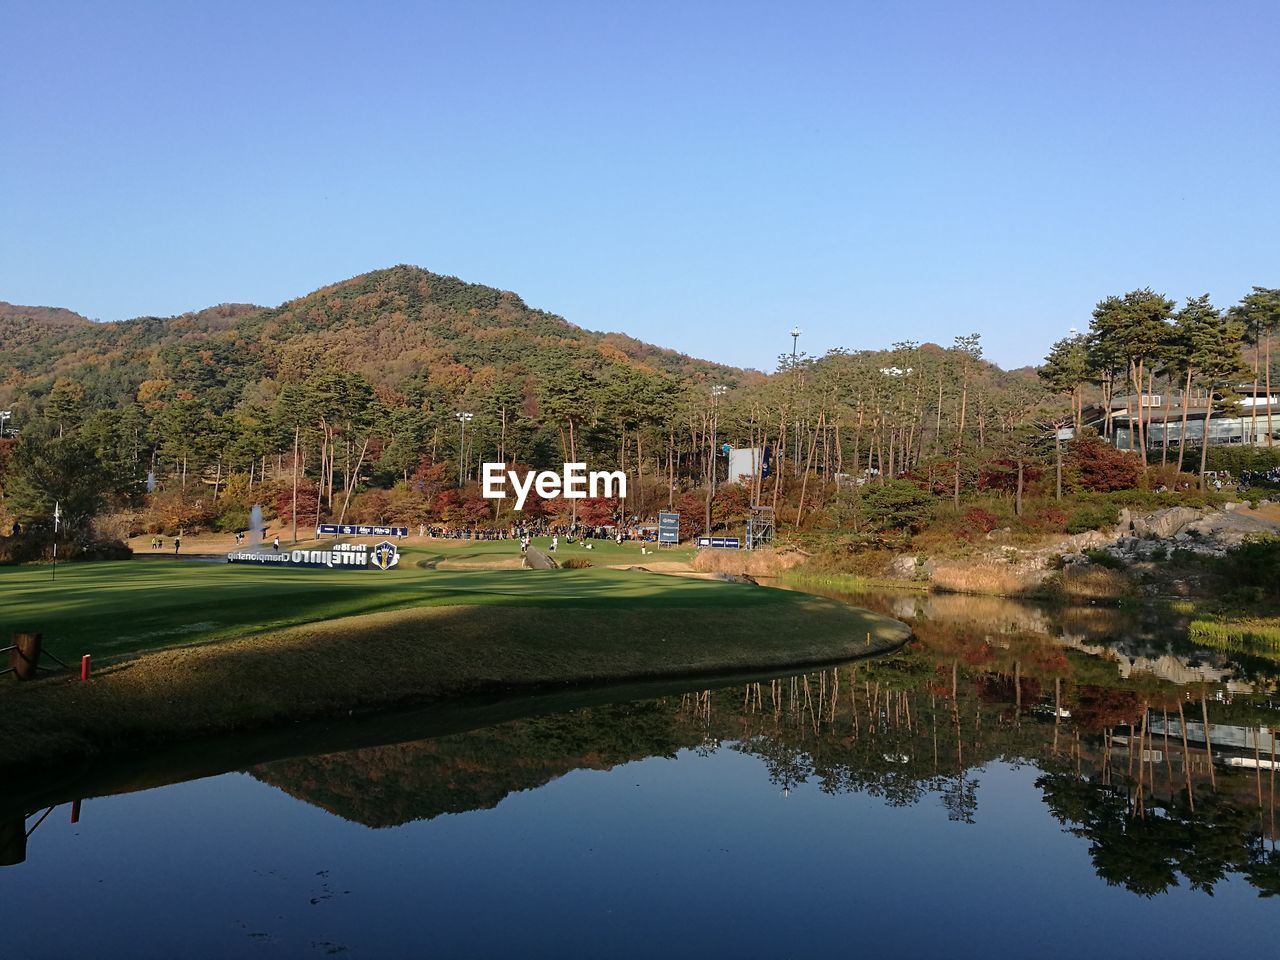 water, clear sky, reflection, copy space, waterfront, golf course, golf, building exterior, nature, outdoors, architecture, built structure, tree, day, tranquility, tranquil scene, mountain, tourist resort, beauty in nature, no people, scenics, blue, grass, sport, green - golf course, sky